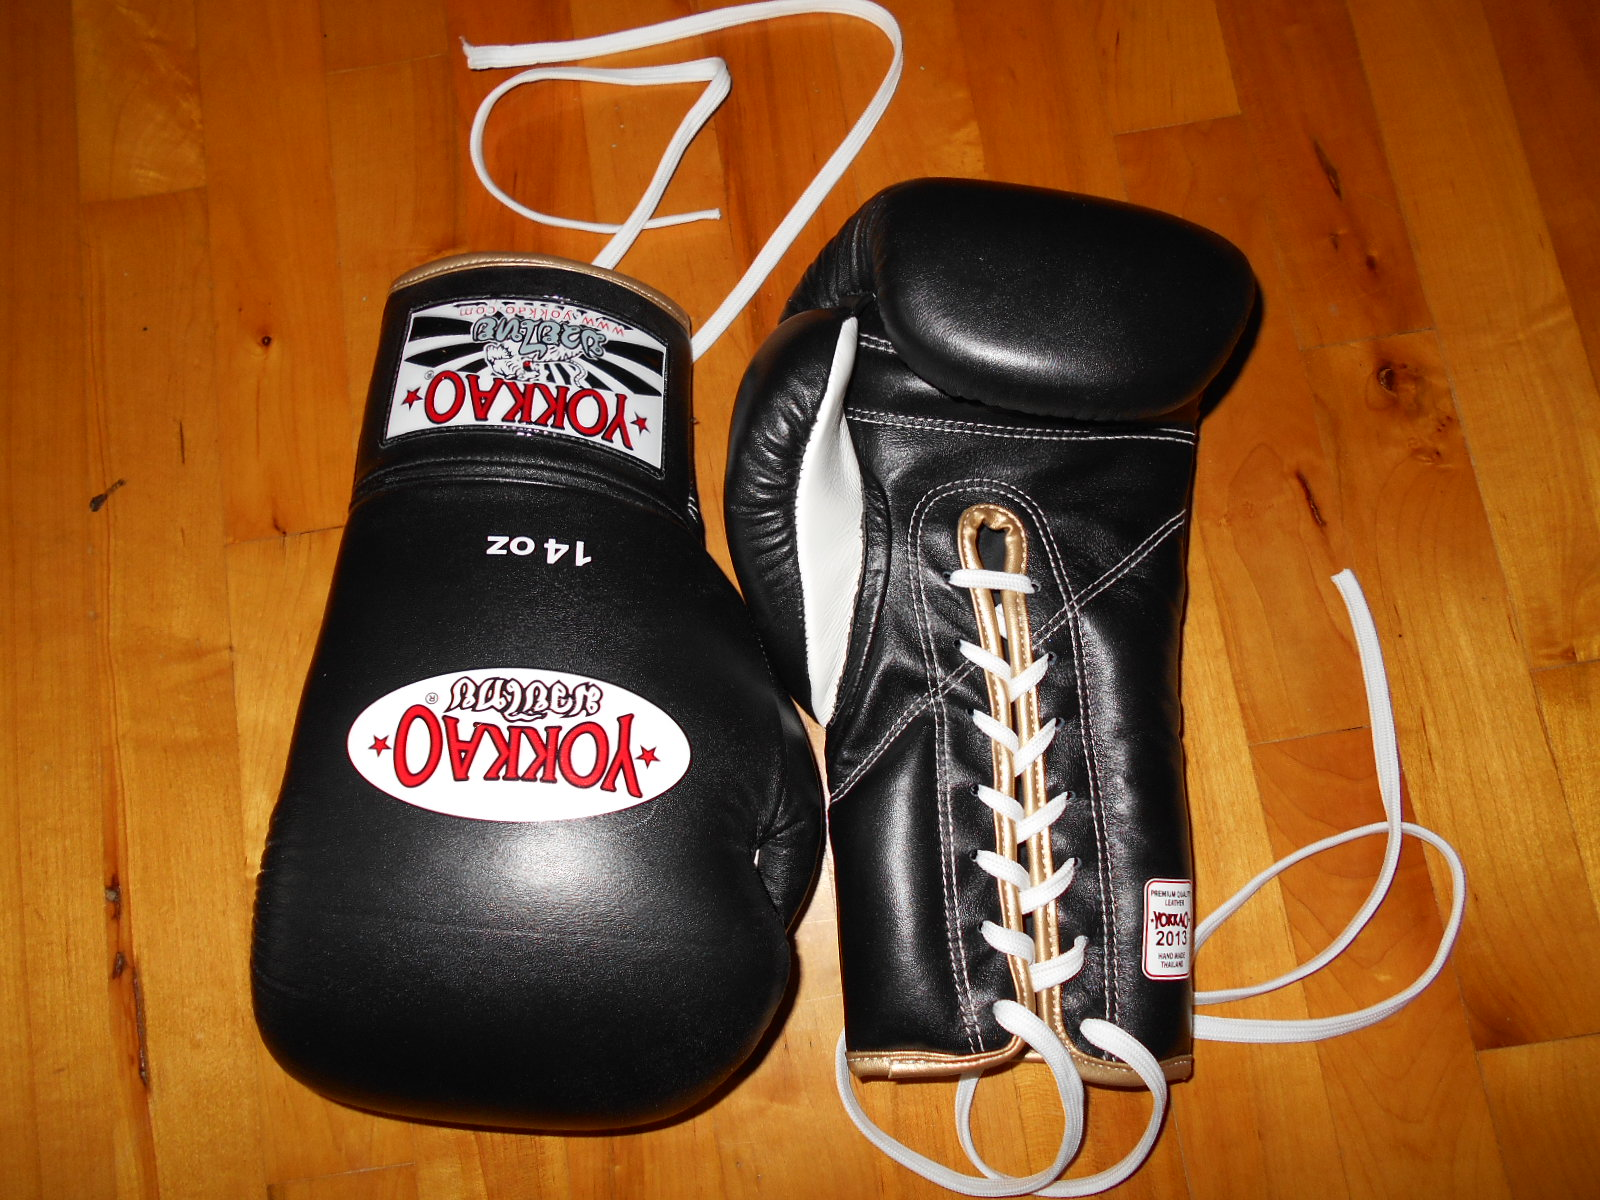 Yokkao black gloves - I Bought A Pair Of 14oz Black Lace Up Gloves And Became A Big Fan Of These Gloves The Second I Got Them On The First Thing I Look For When I